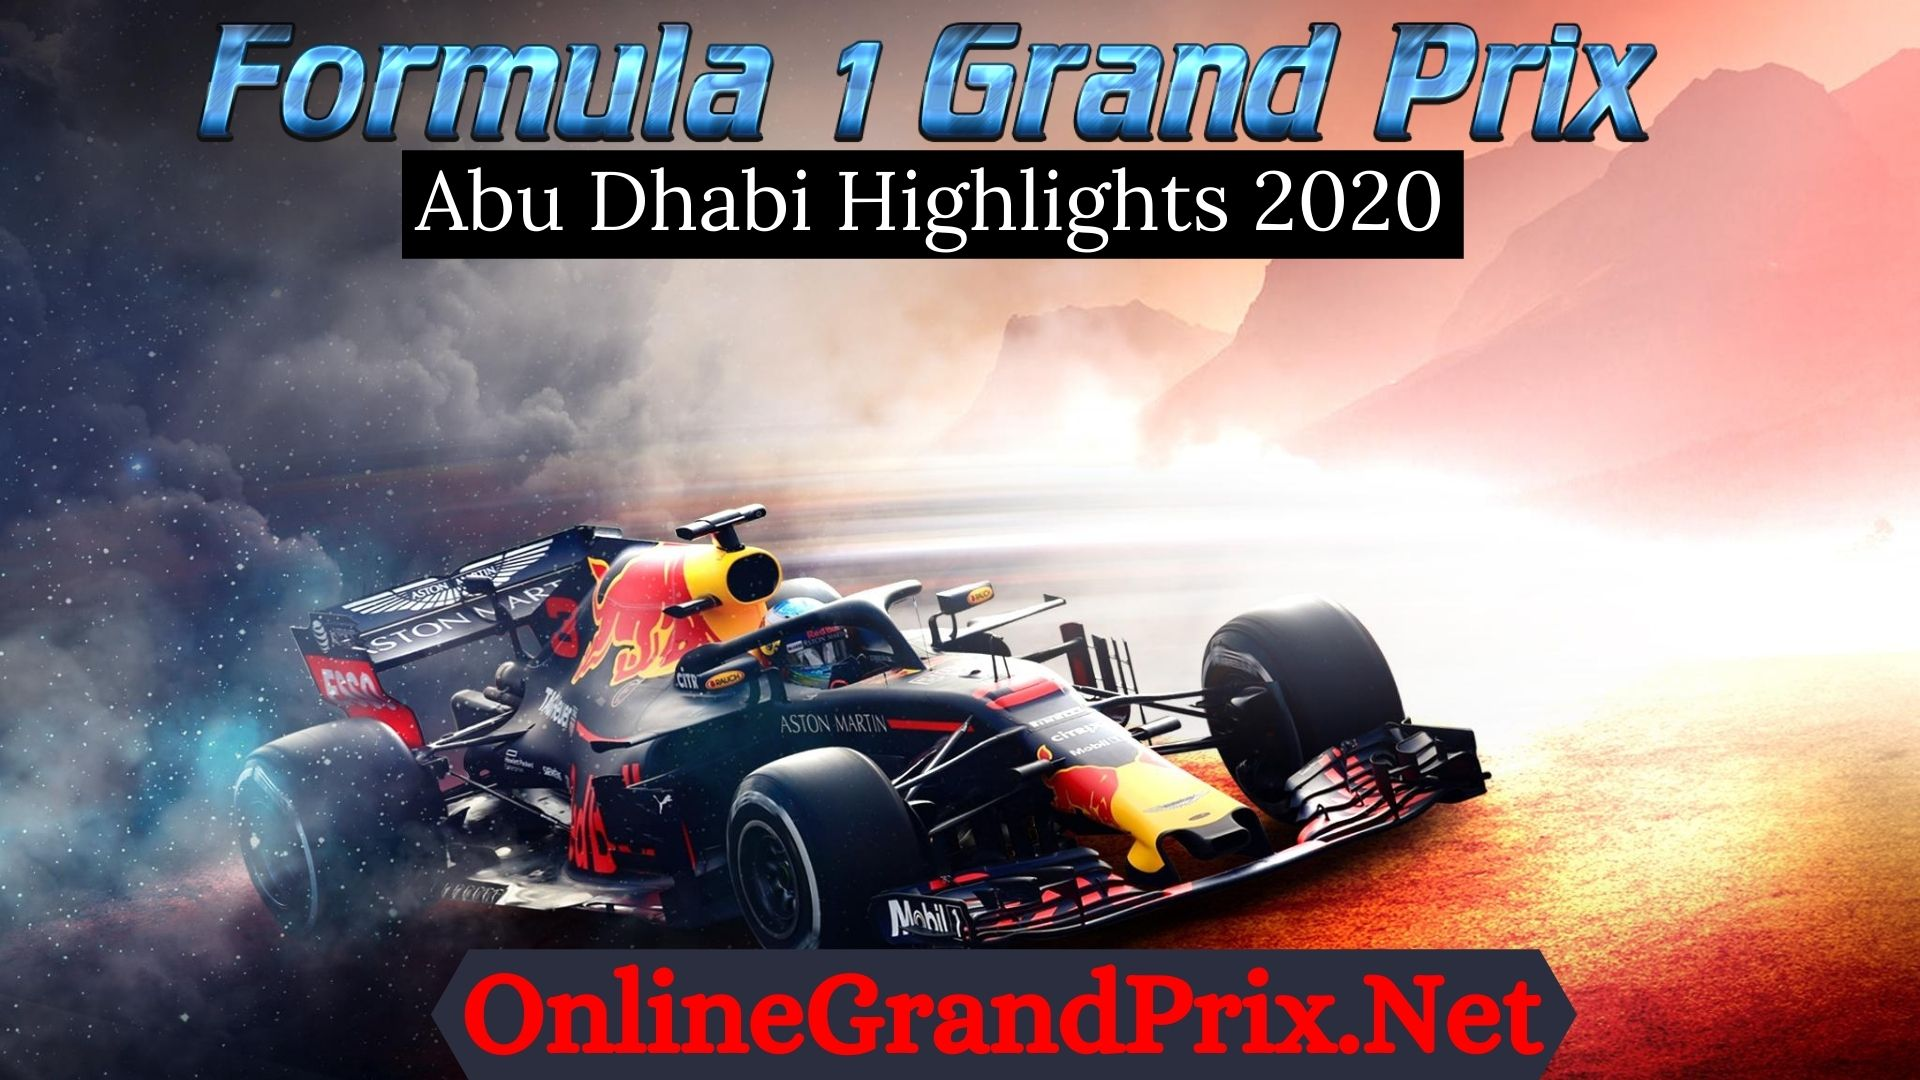 Abu Dhabi GP F1 Highlights 2020